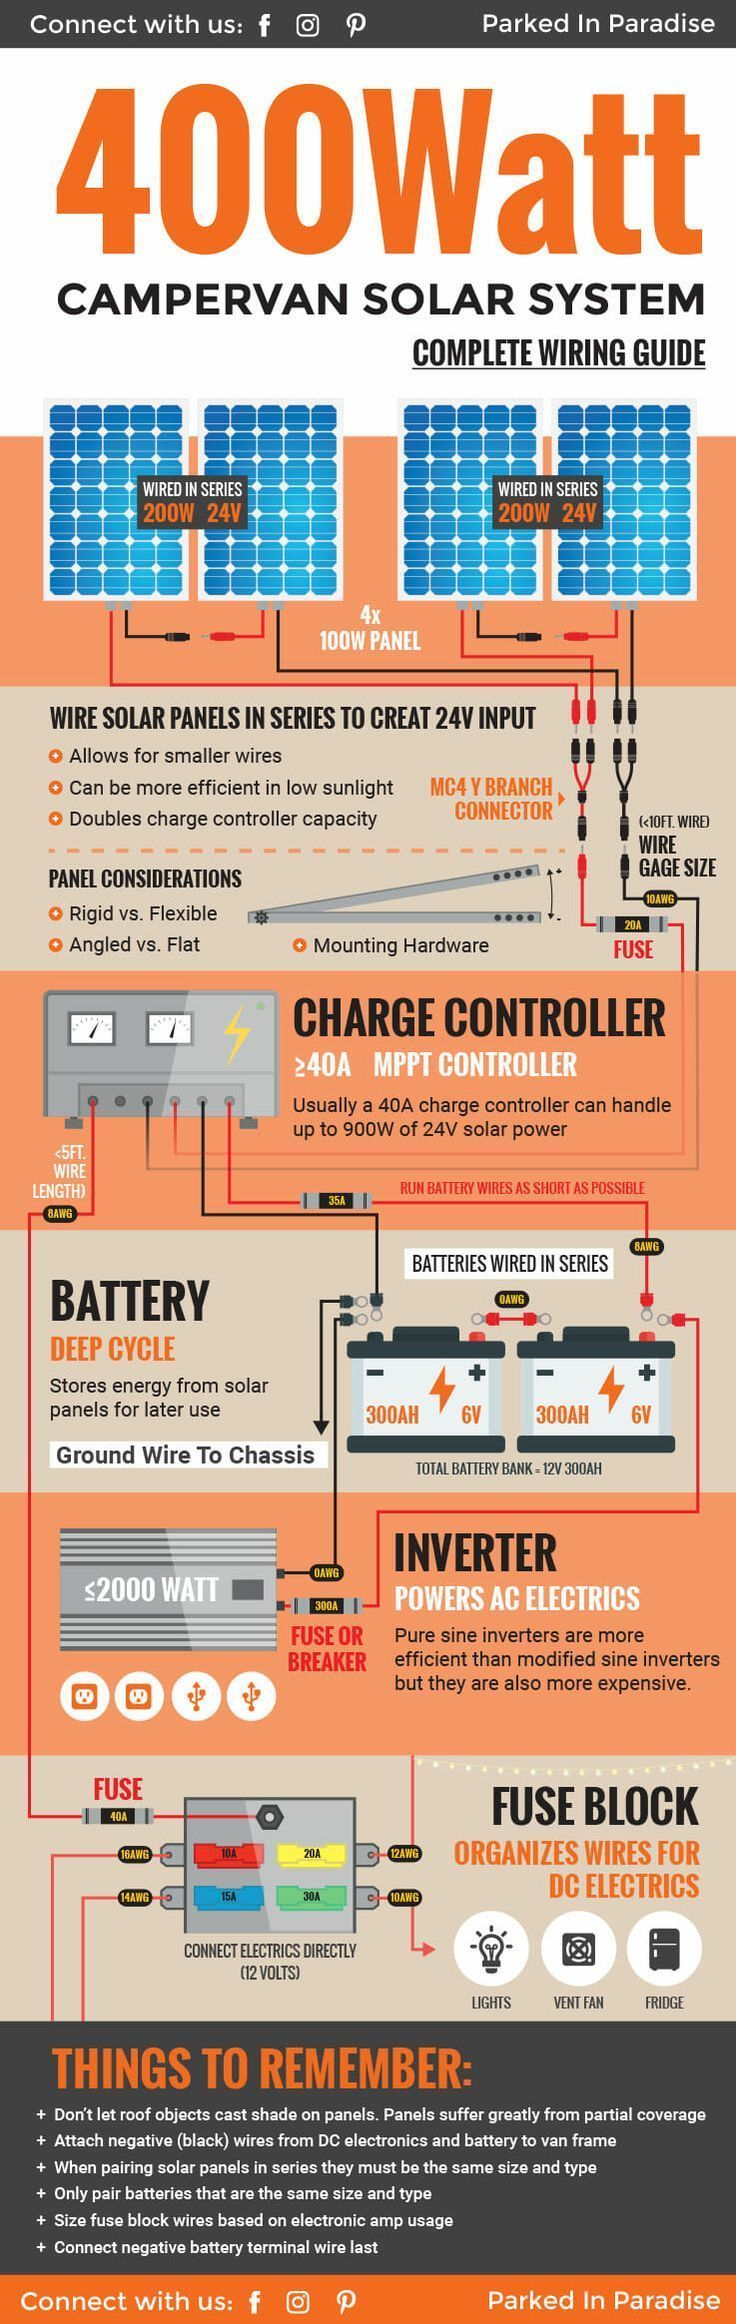 small resolution of diy wiring guide for a 400 watt solar panel system perfect kit for a campervan build i want this on my own van build perfect solar power setup of